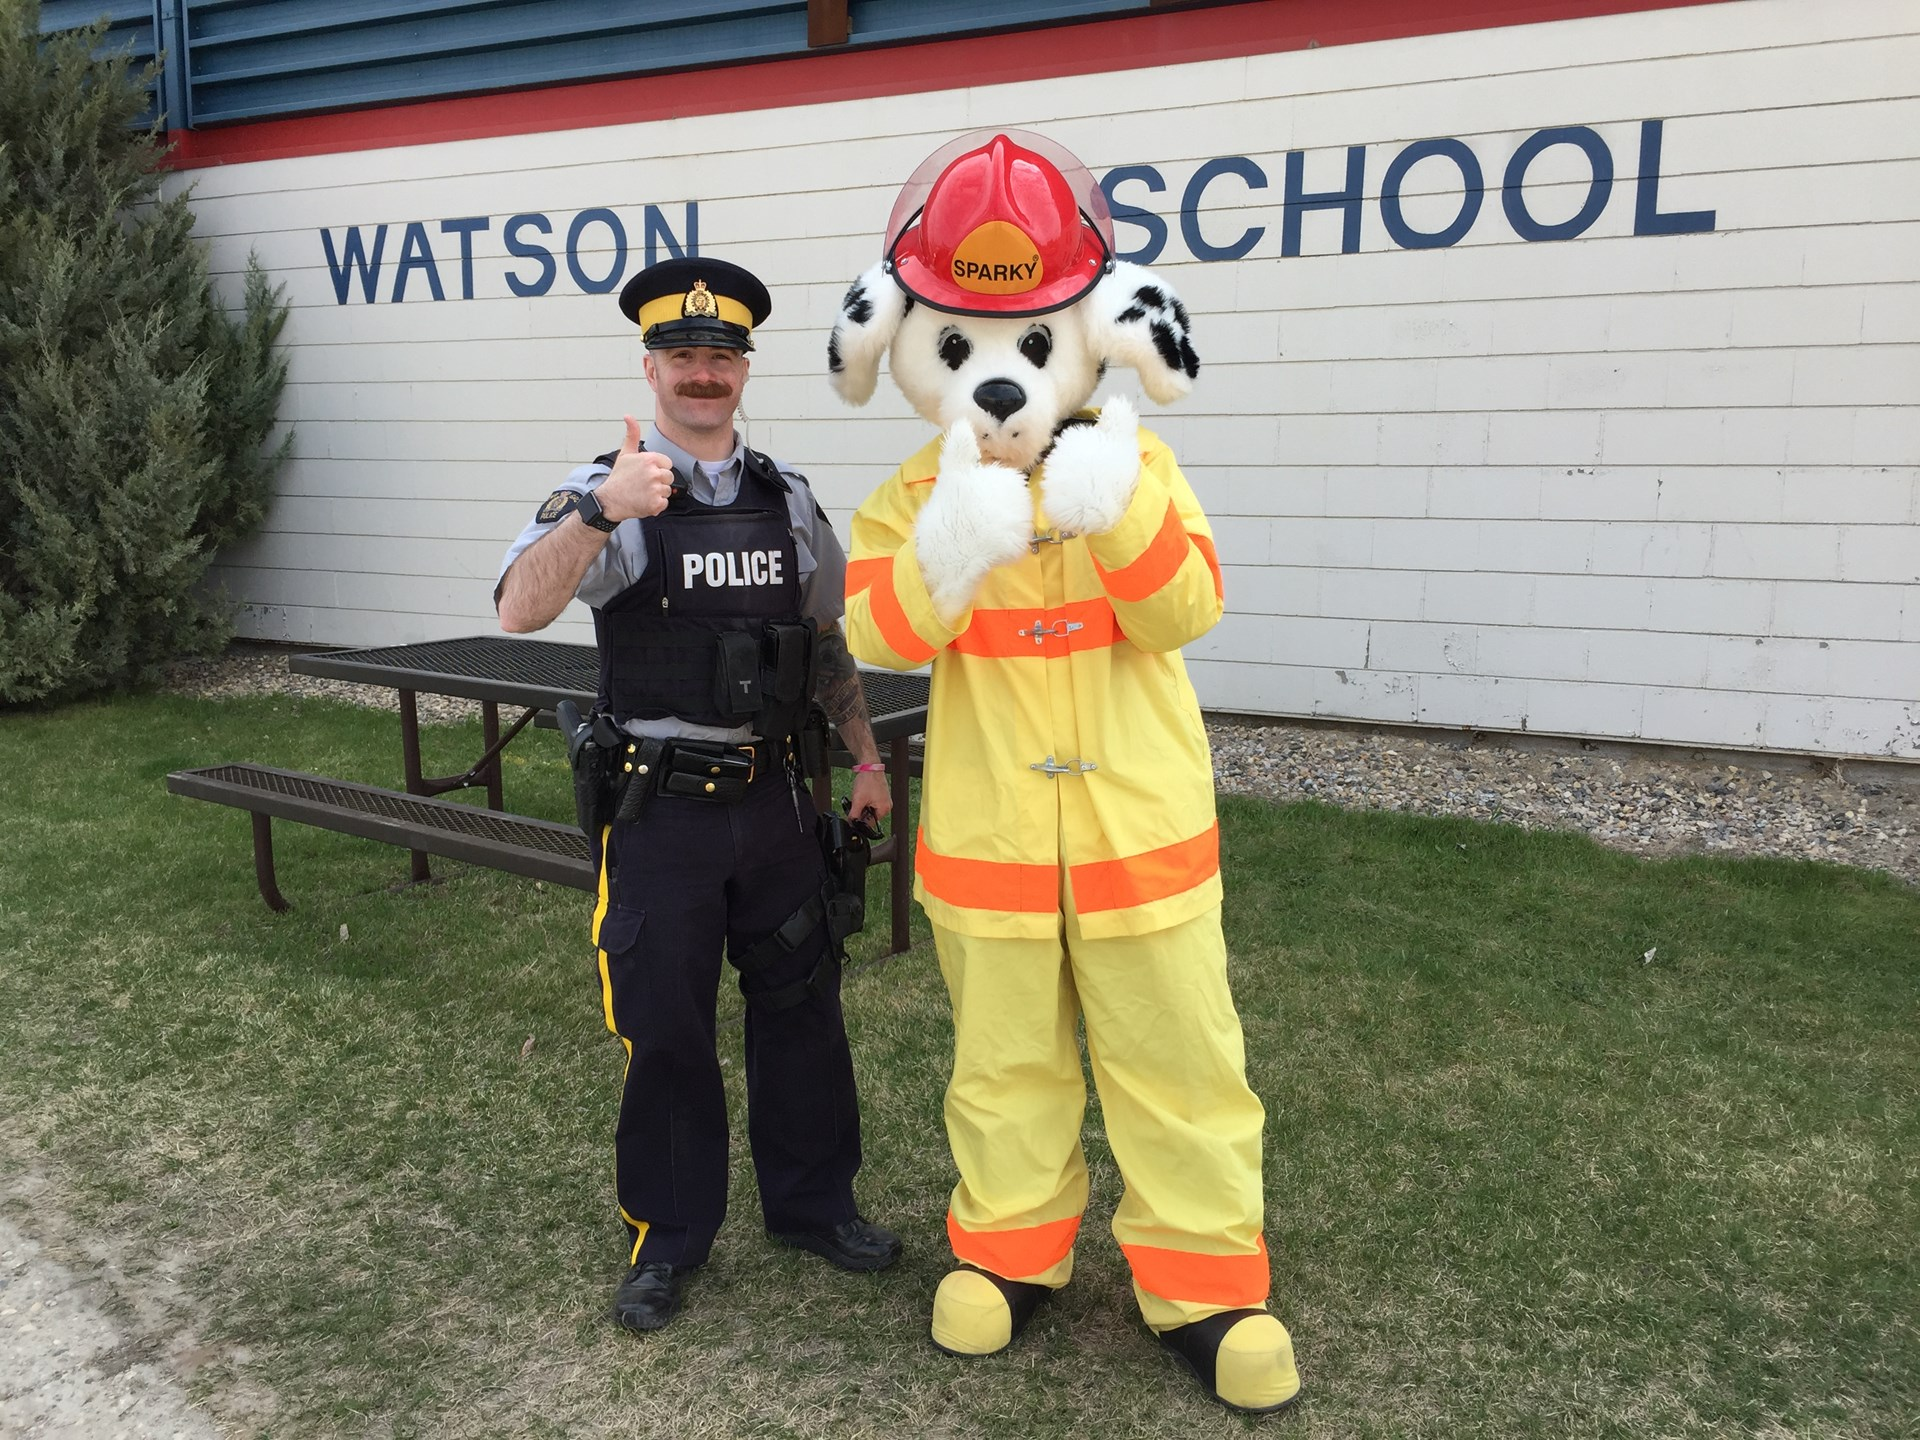 RCMP,%20Sparky%20the%20Fire%20Dog%20at%20Watson%20School.JPG